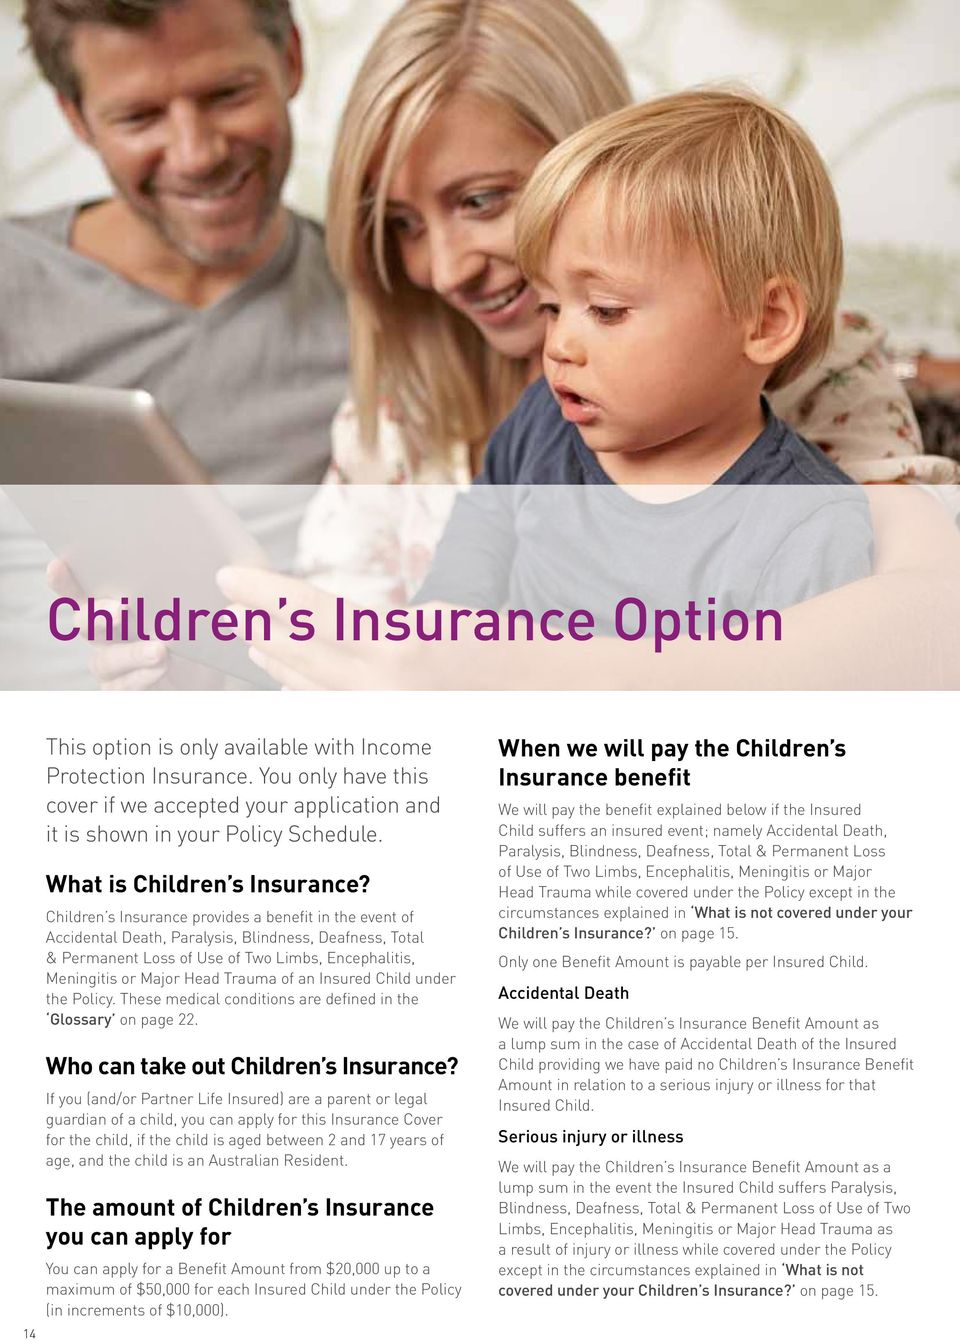 Children s Insurance provides a benefit in the event of Accidental Death, Paralysis, Blindness, Deafness, Total & Permanent Loss of Use of Two Limbs, Encephalitis, Meningitis or Major Head Trauma of